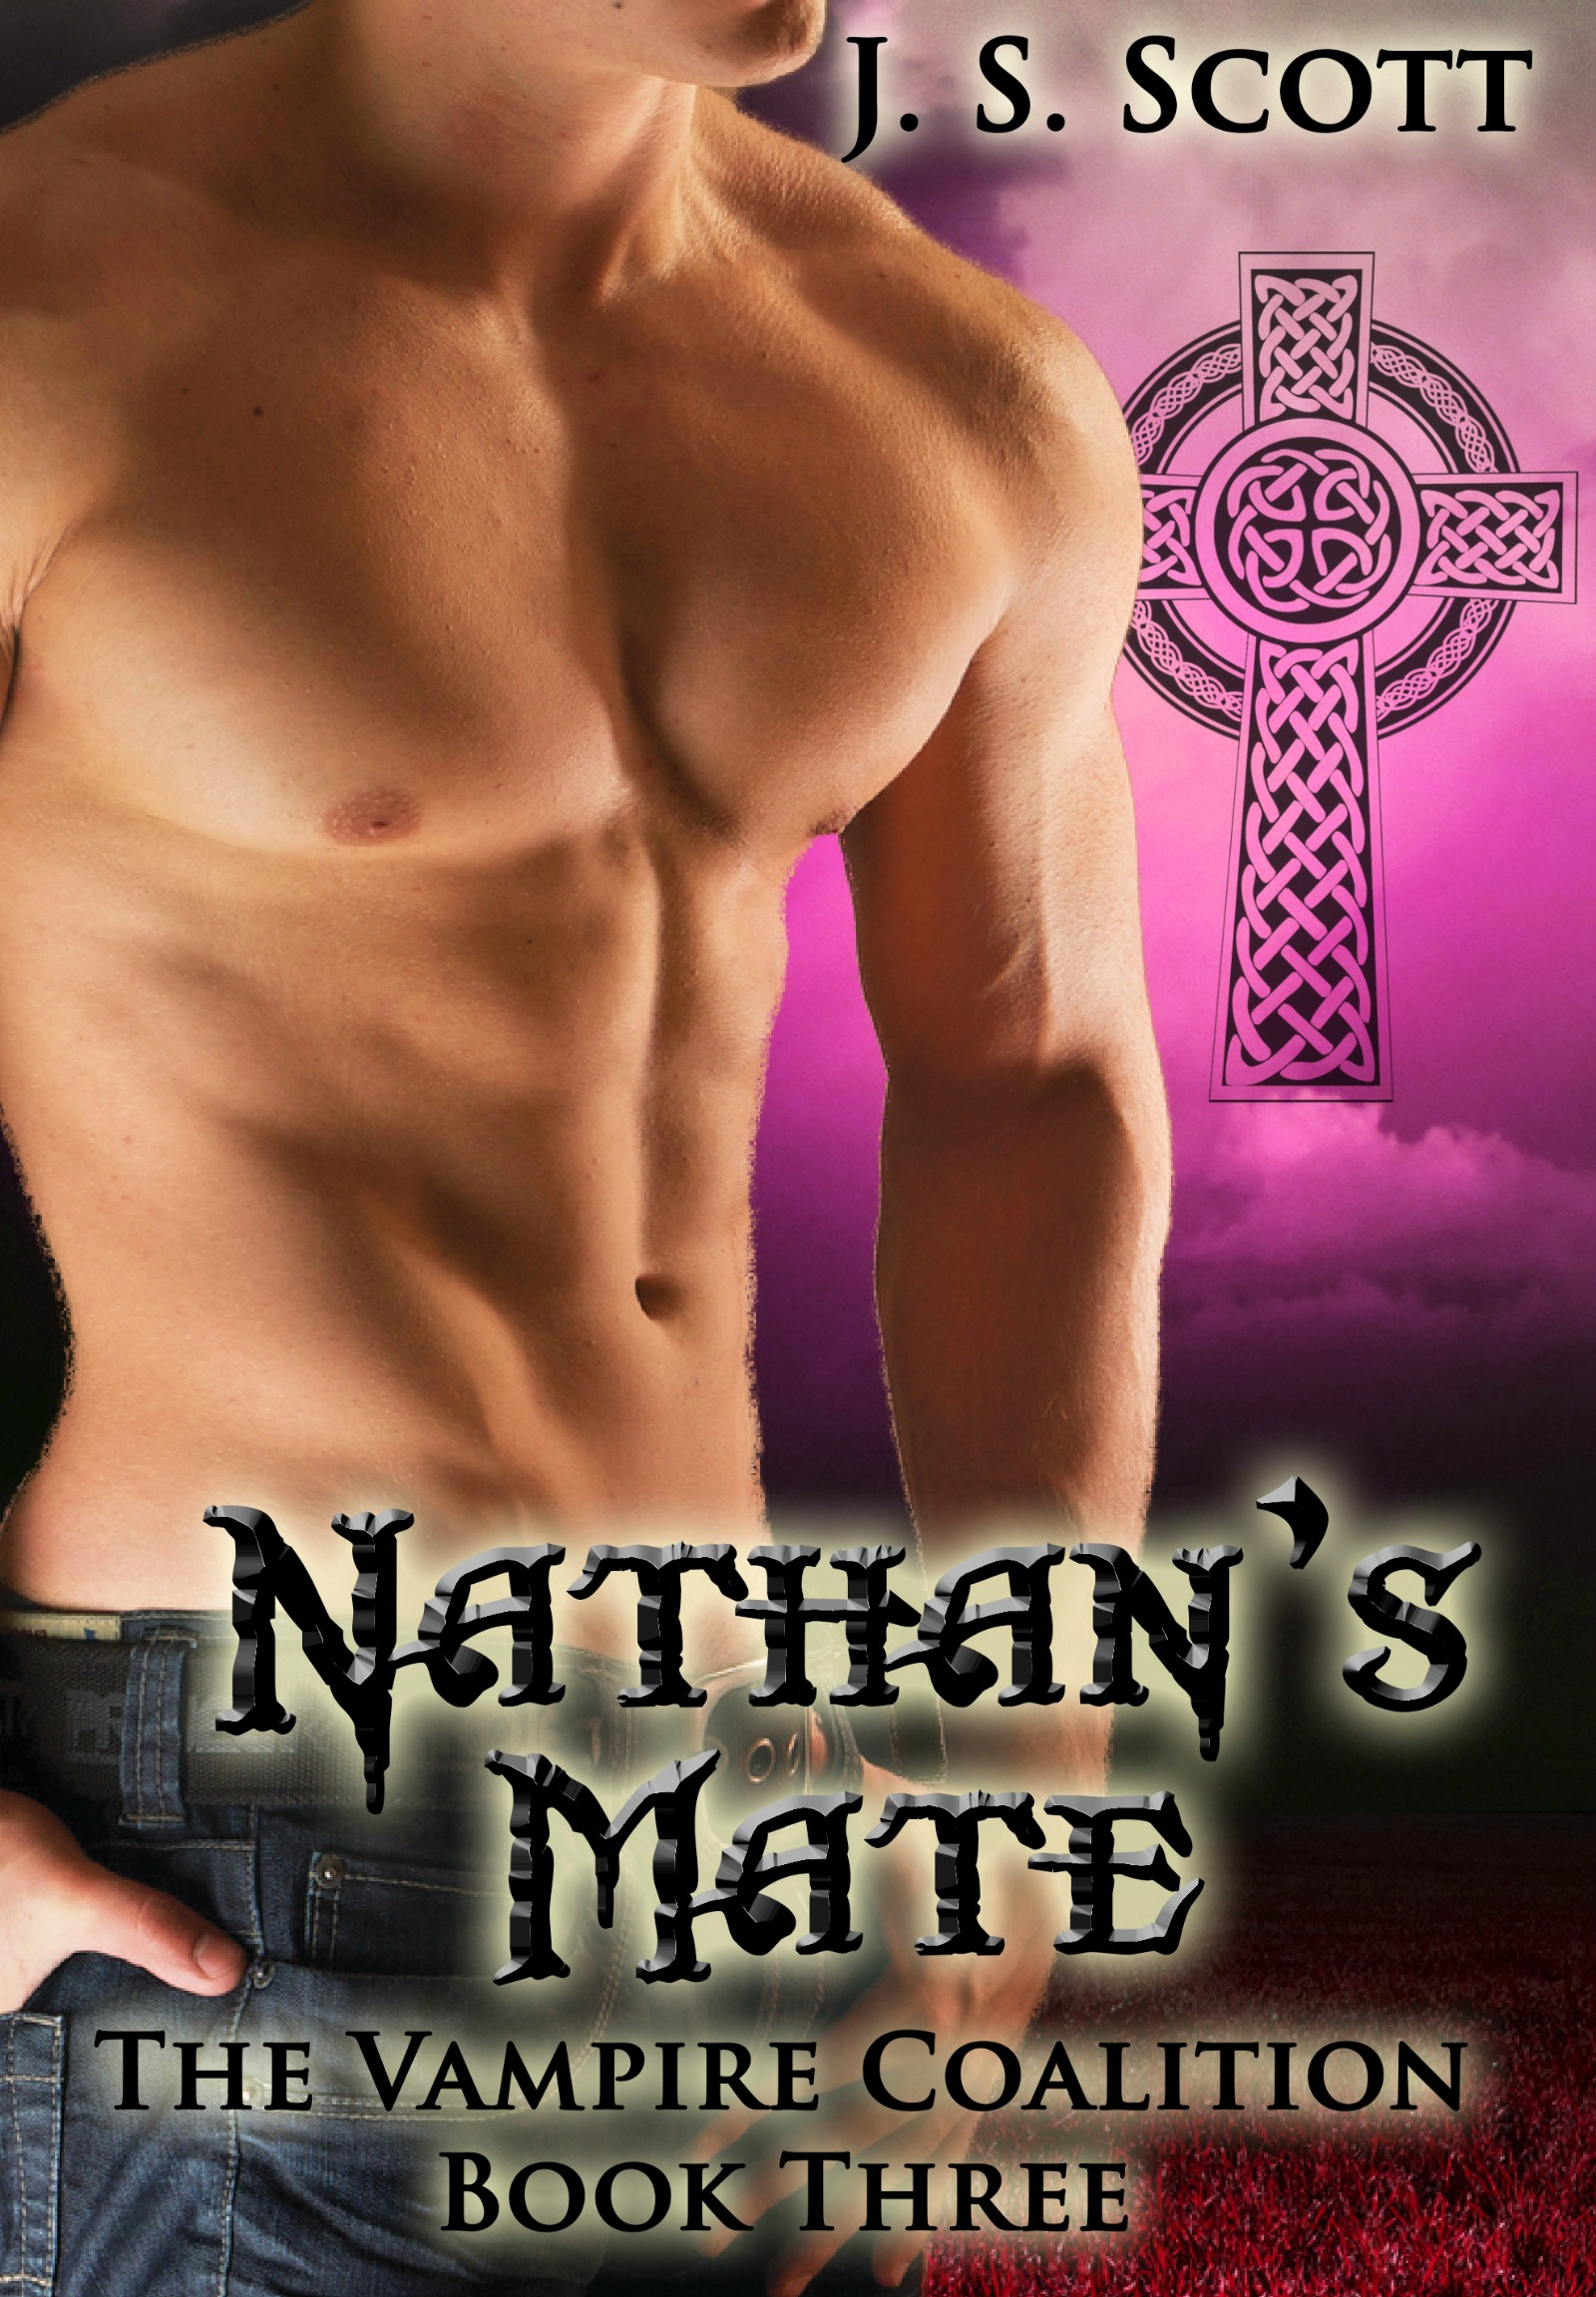 J. S. Scott - Nathan's Mate (Book Three: The Vampire Coalition)